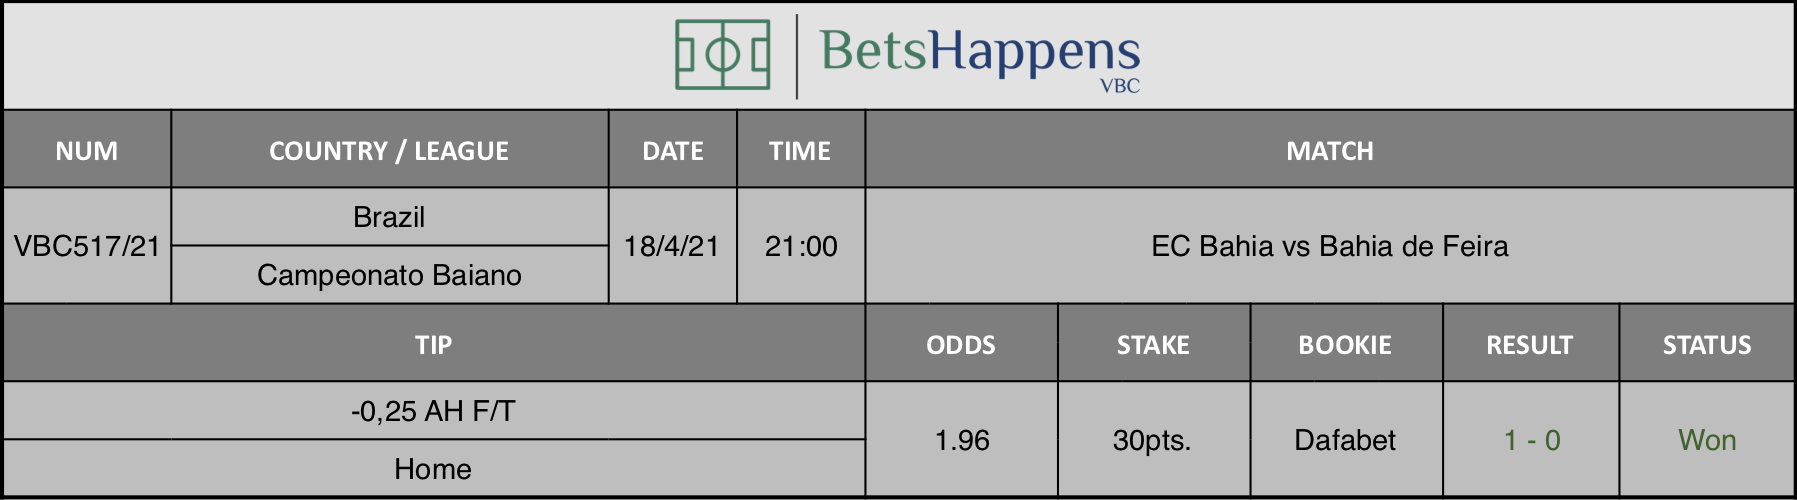 Results of our tip for the EC Bahia vs Bahia de Feira match where -0,25 AH F/T  Home is recommended.